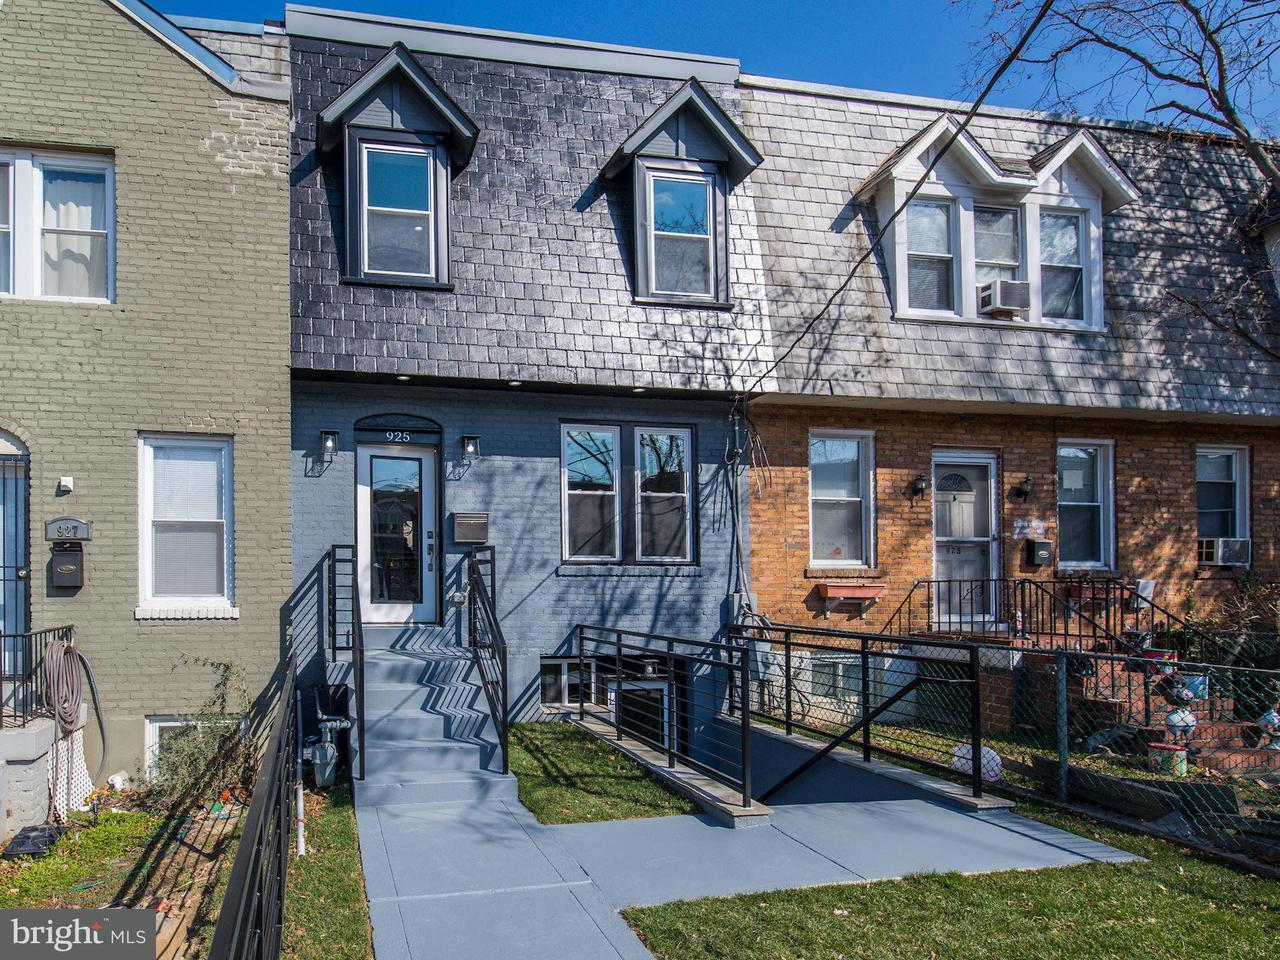 Single Family Home for Sale at 925 Delafield Pl Nw 925 Delafield Pl Nw Washington, District Of Columbia 20011 United States